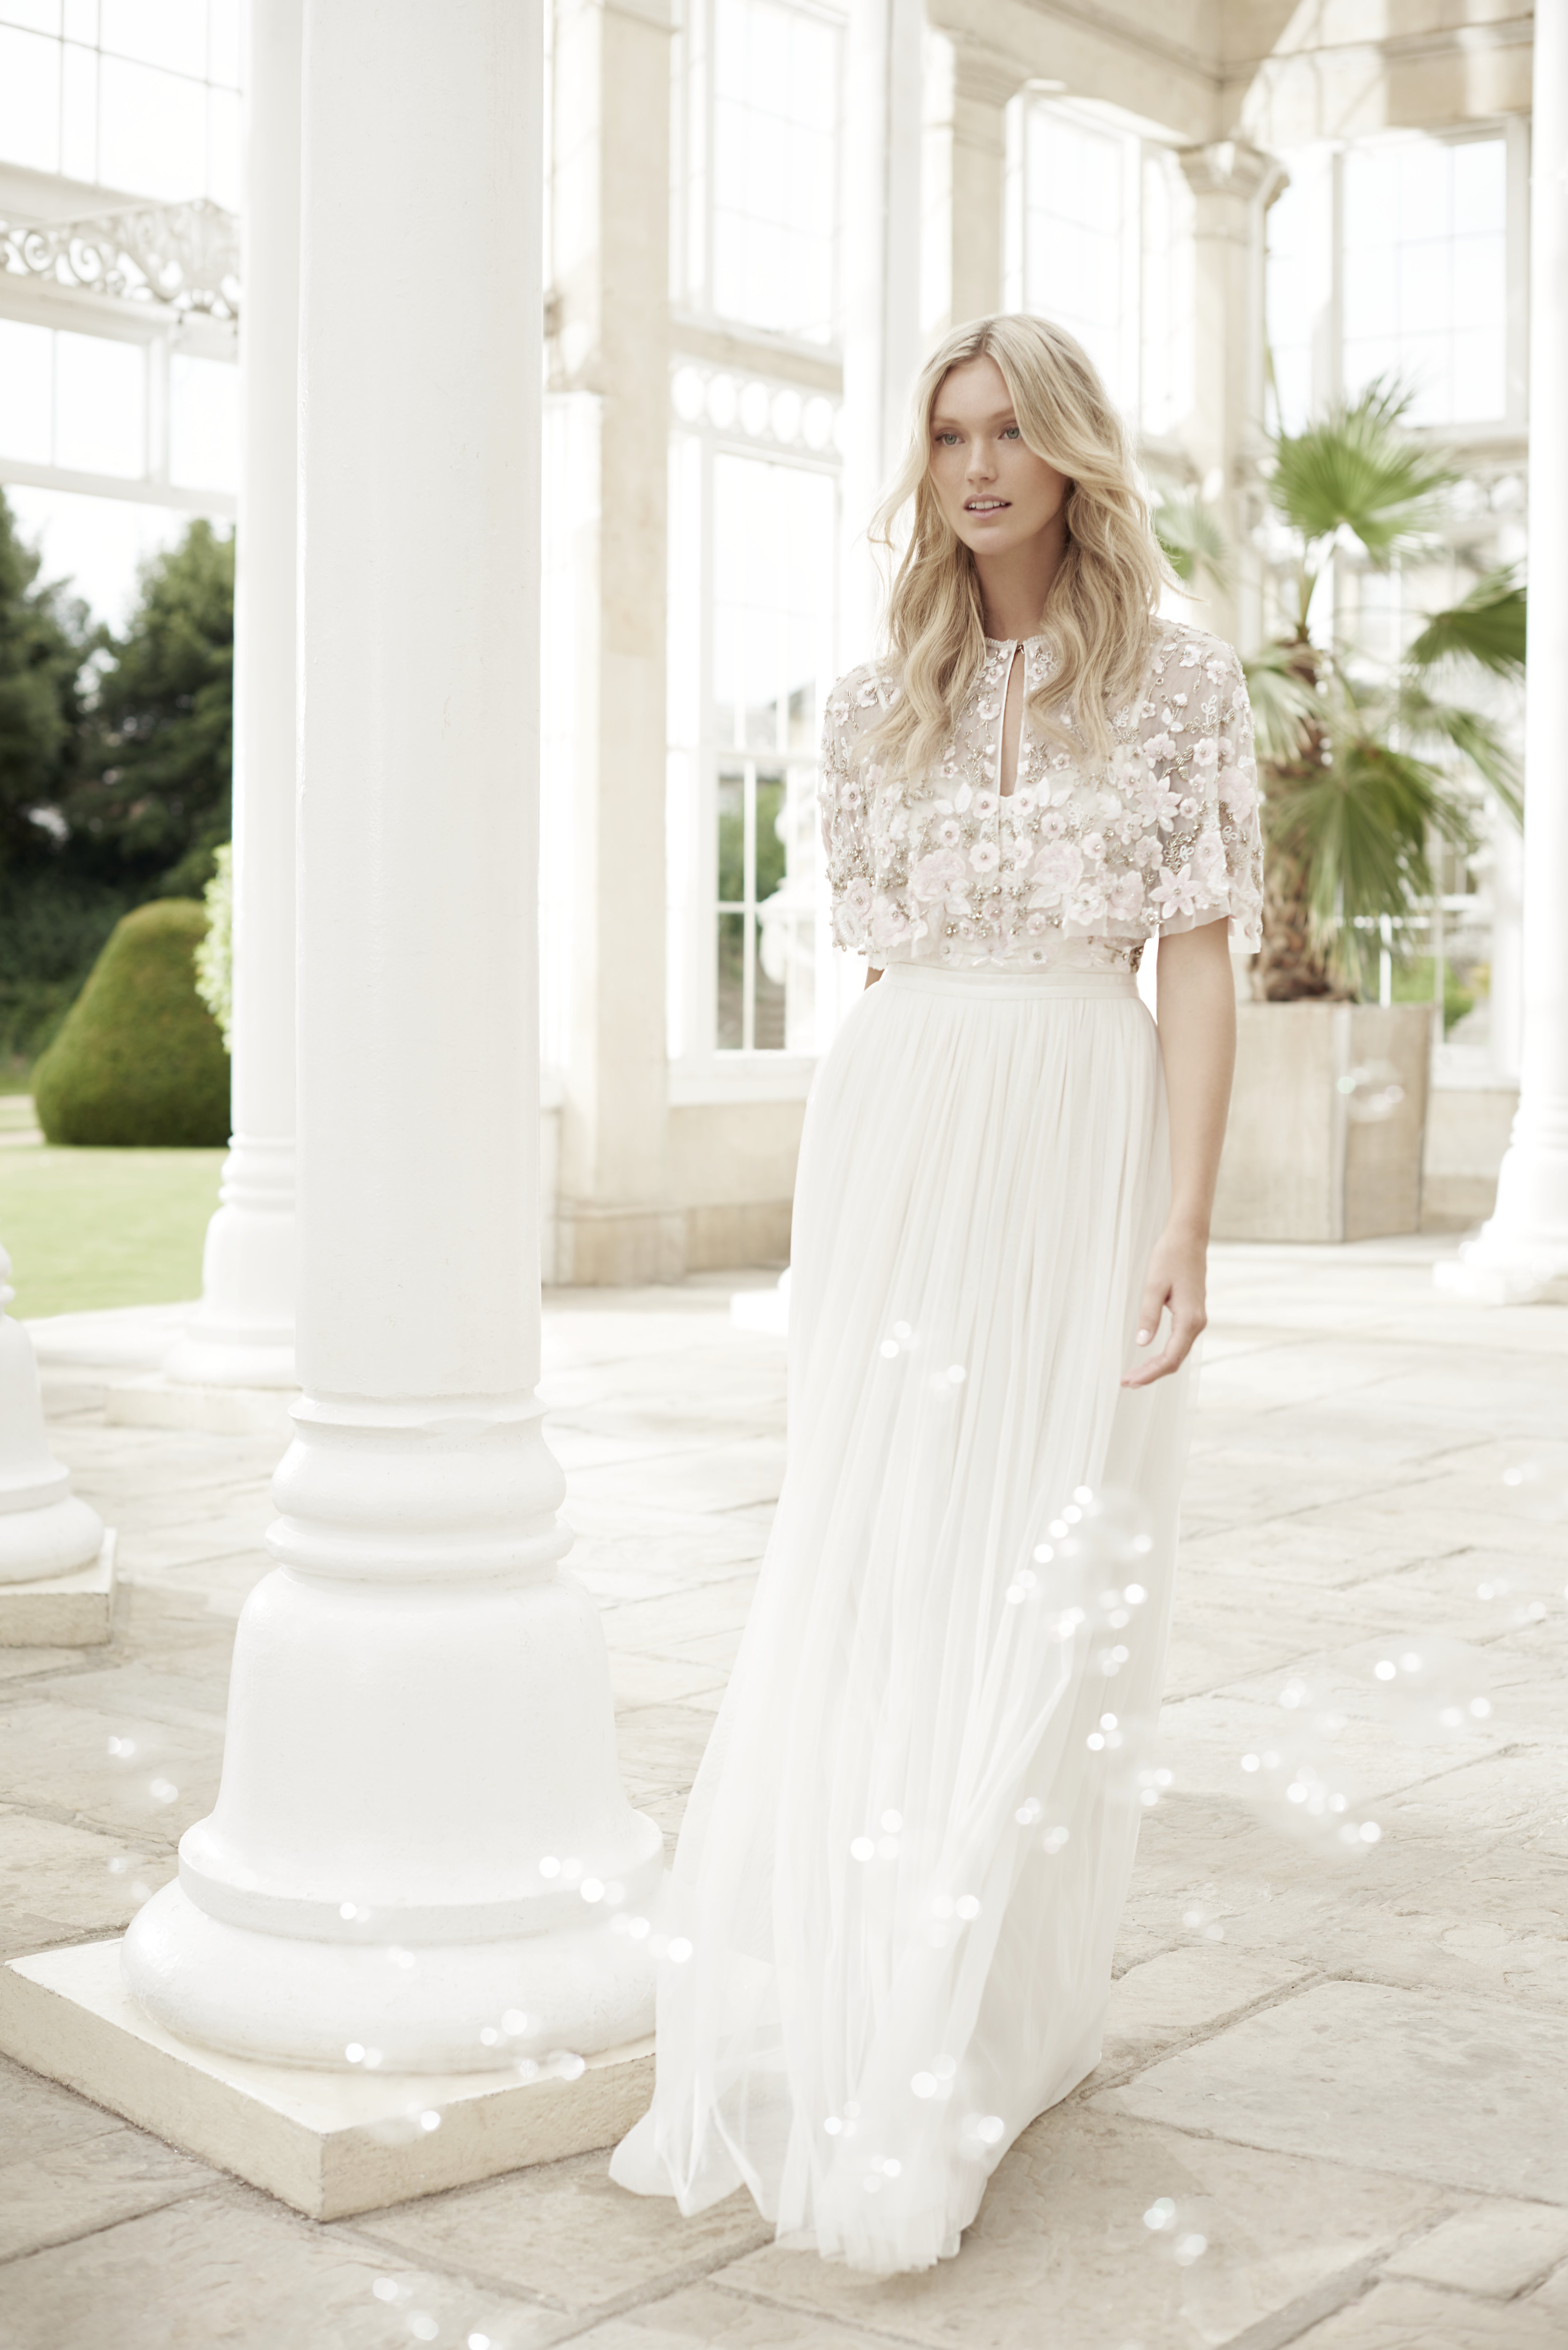 Wedding Dresses, High Street Wedding Dresses, High Street Bridal, Needle and Thread